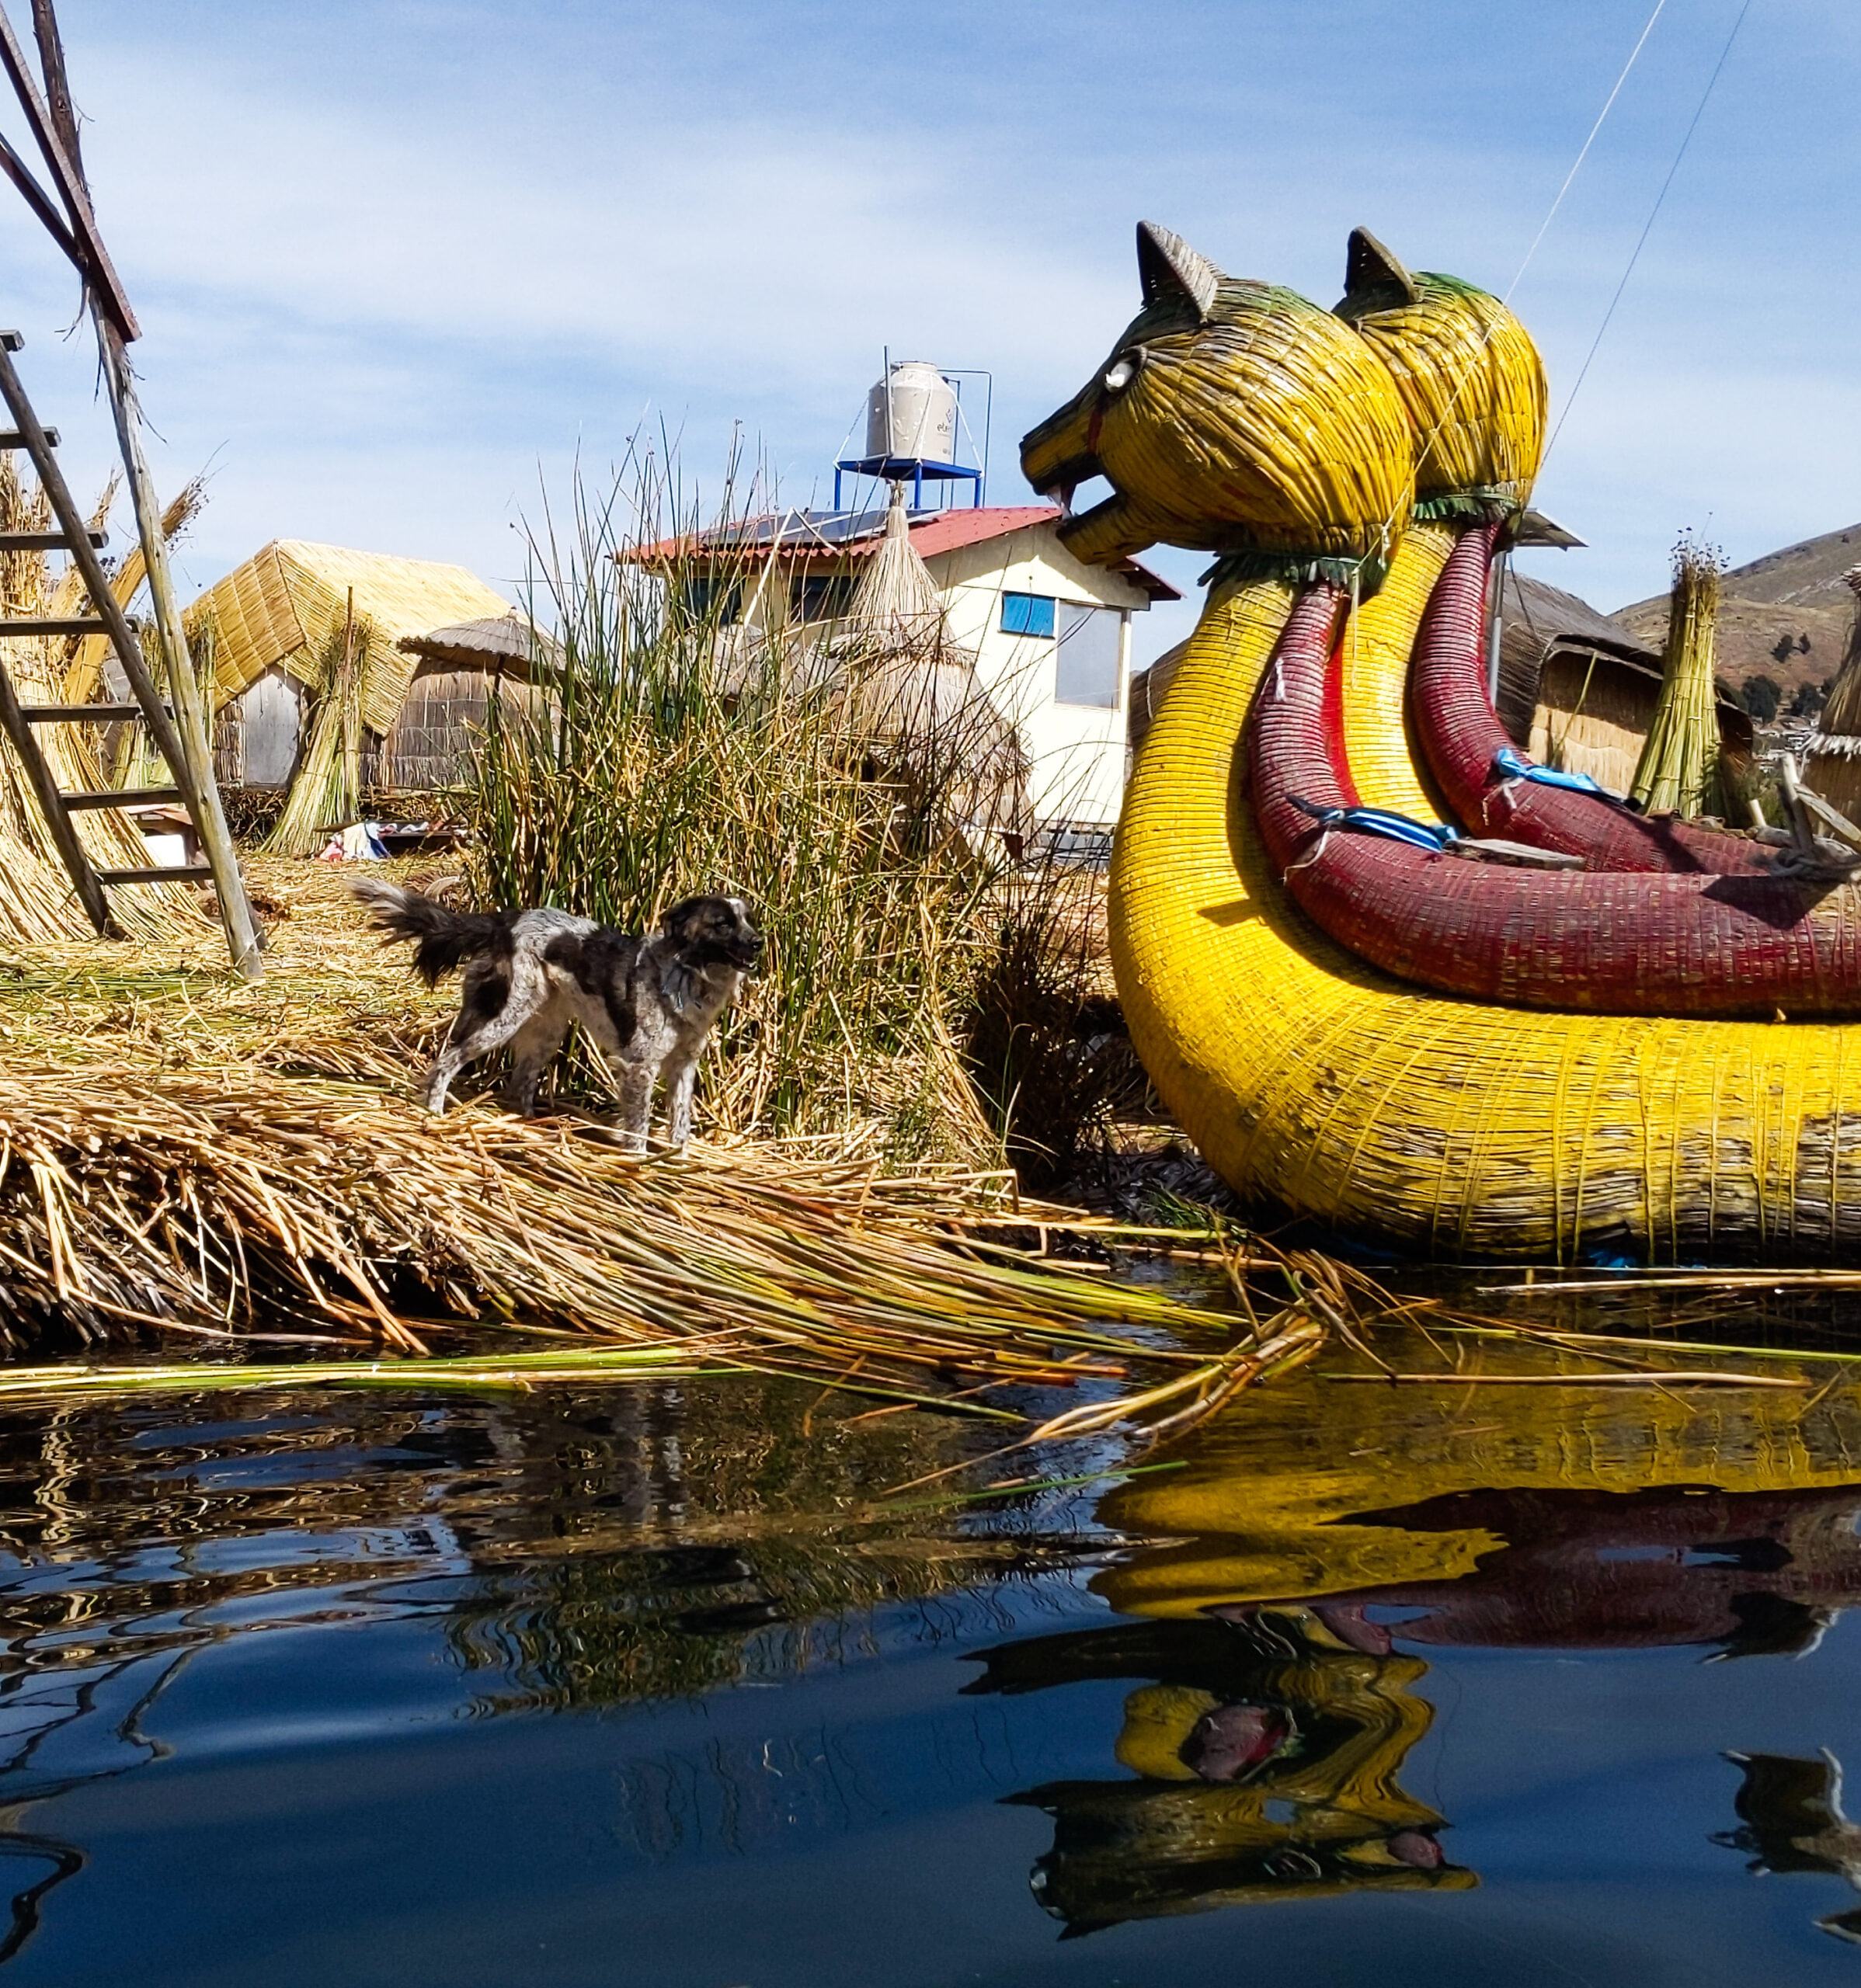 Traditional boats of the uros village in peru.